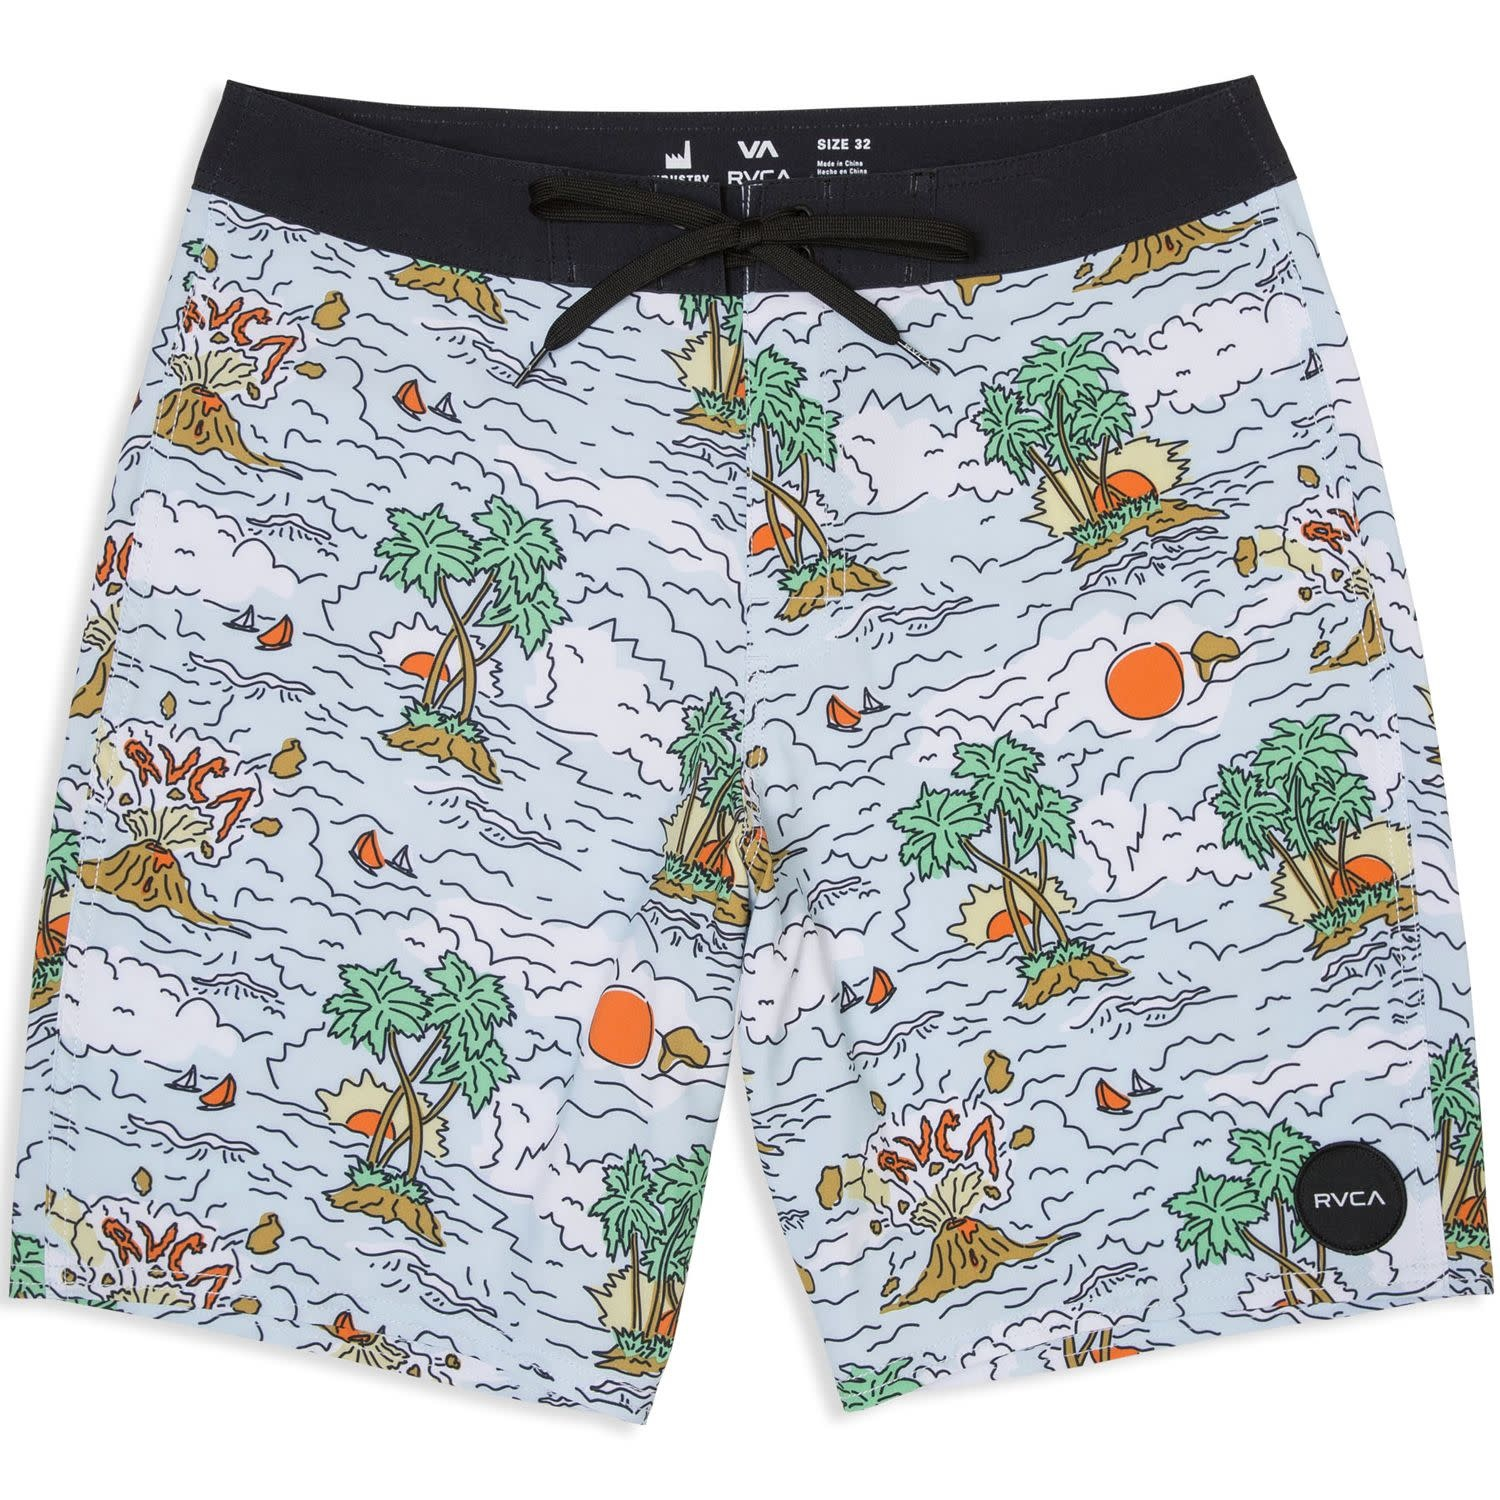 RVCA VA Trunk Print Blue